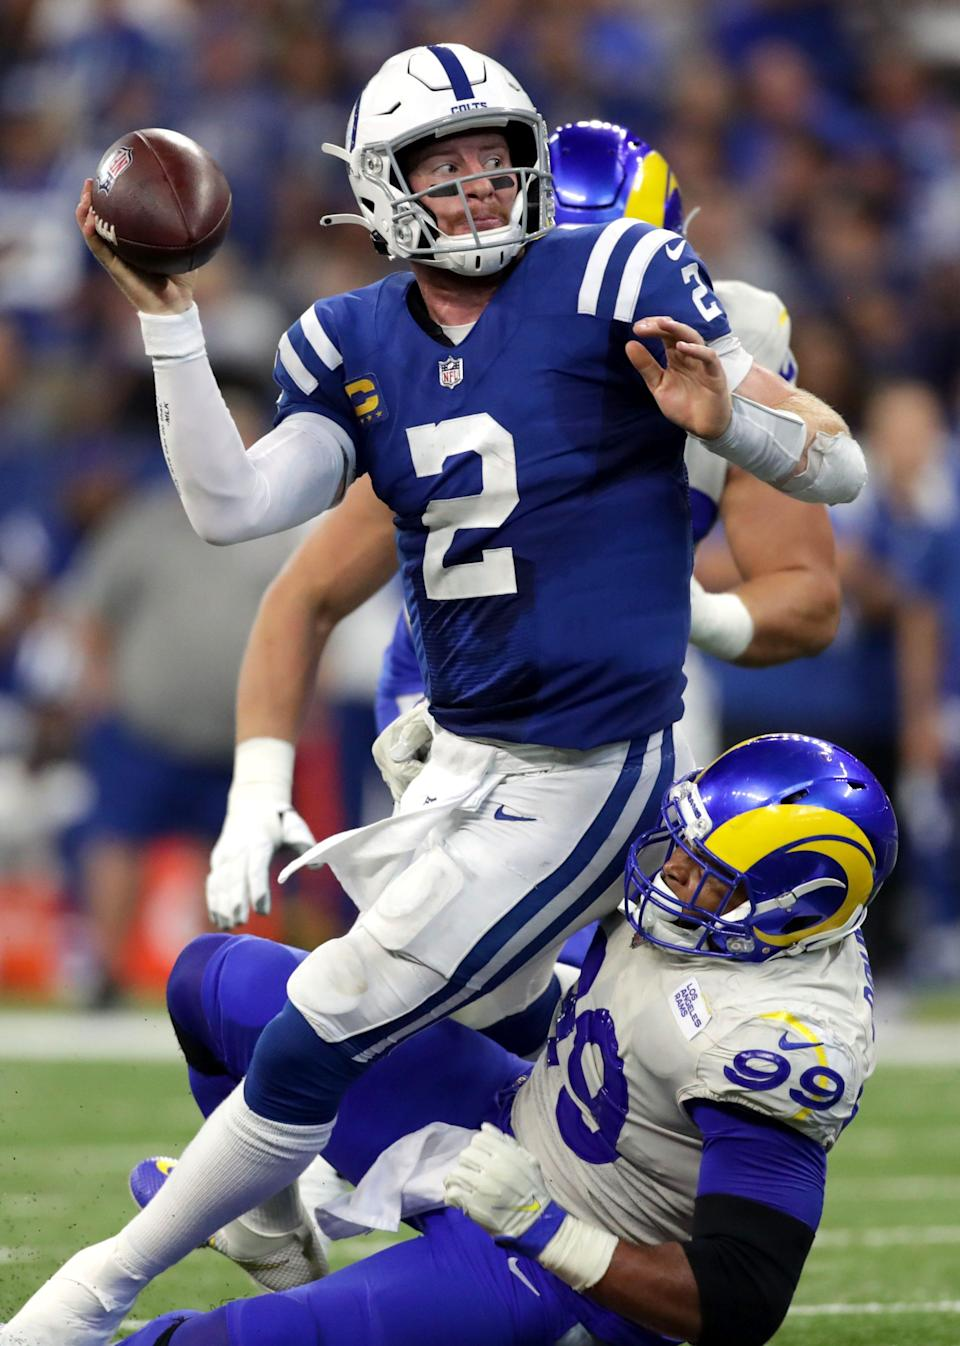 Indianapolis Colts quarterback Carson Wentz (2) tries to pass as he's brought down by Los Angeles Rams defensive end Aaron Donald (99) on Sunday, Sept. 19, 2021, during a game against the Los Angeles Rams at Lucas Oil Stadium in Indianapolis.